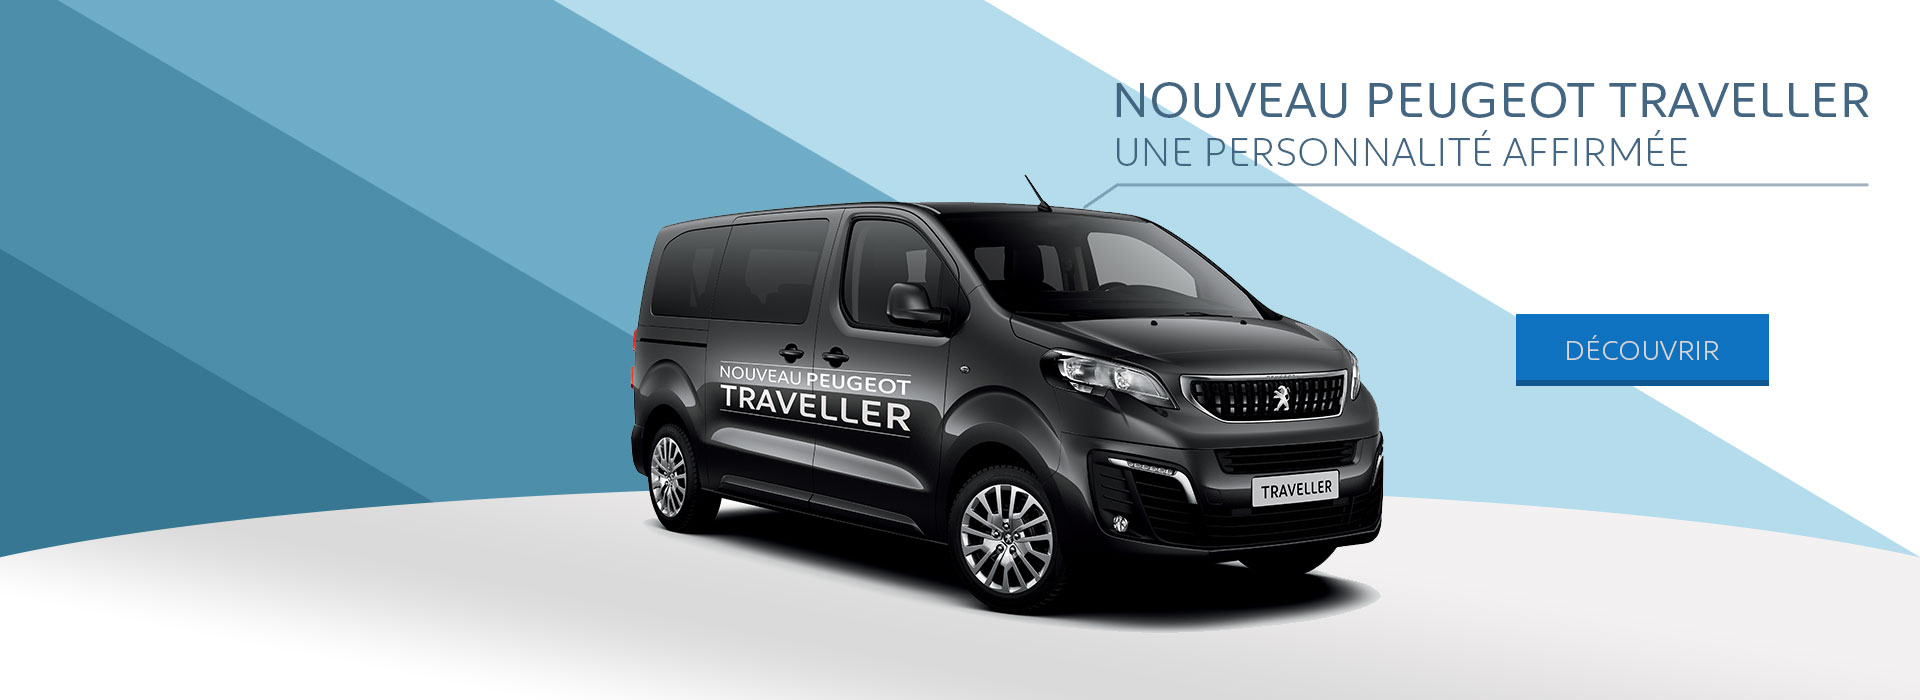 peugeot reims vente voiture neuve vehicule occasion. Black Bedroom Furniture Sets. Home Design Ideas